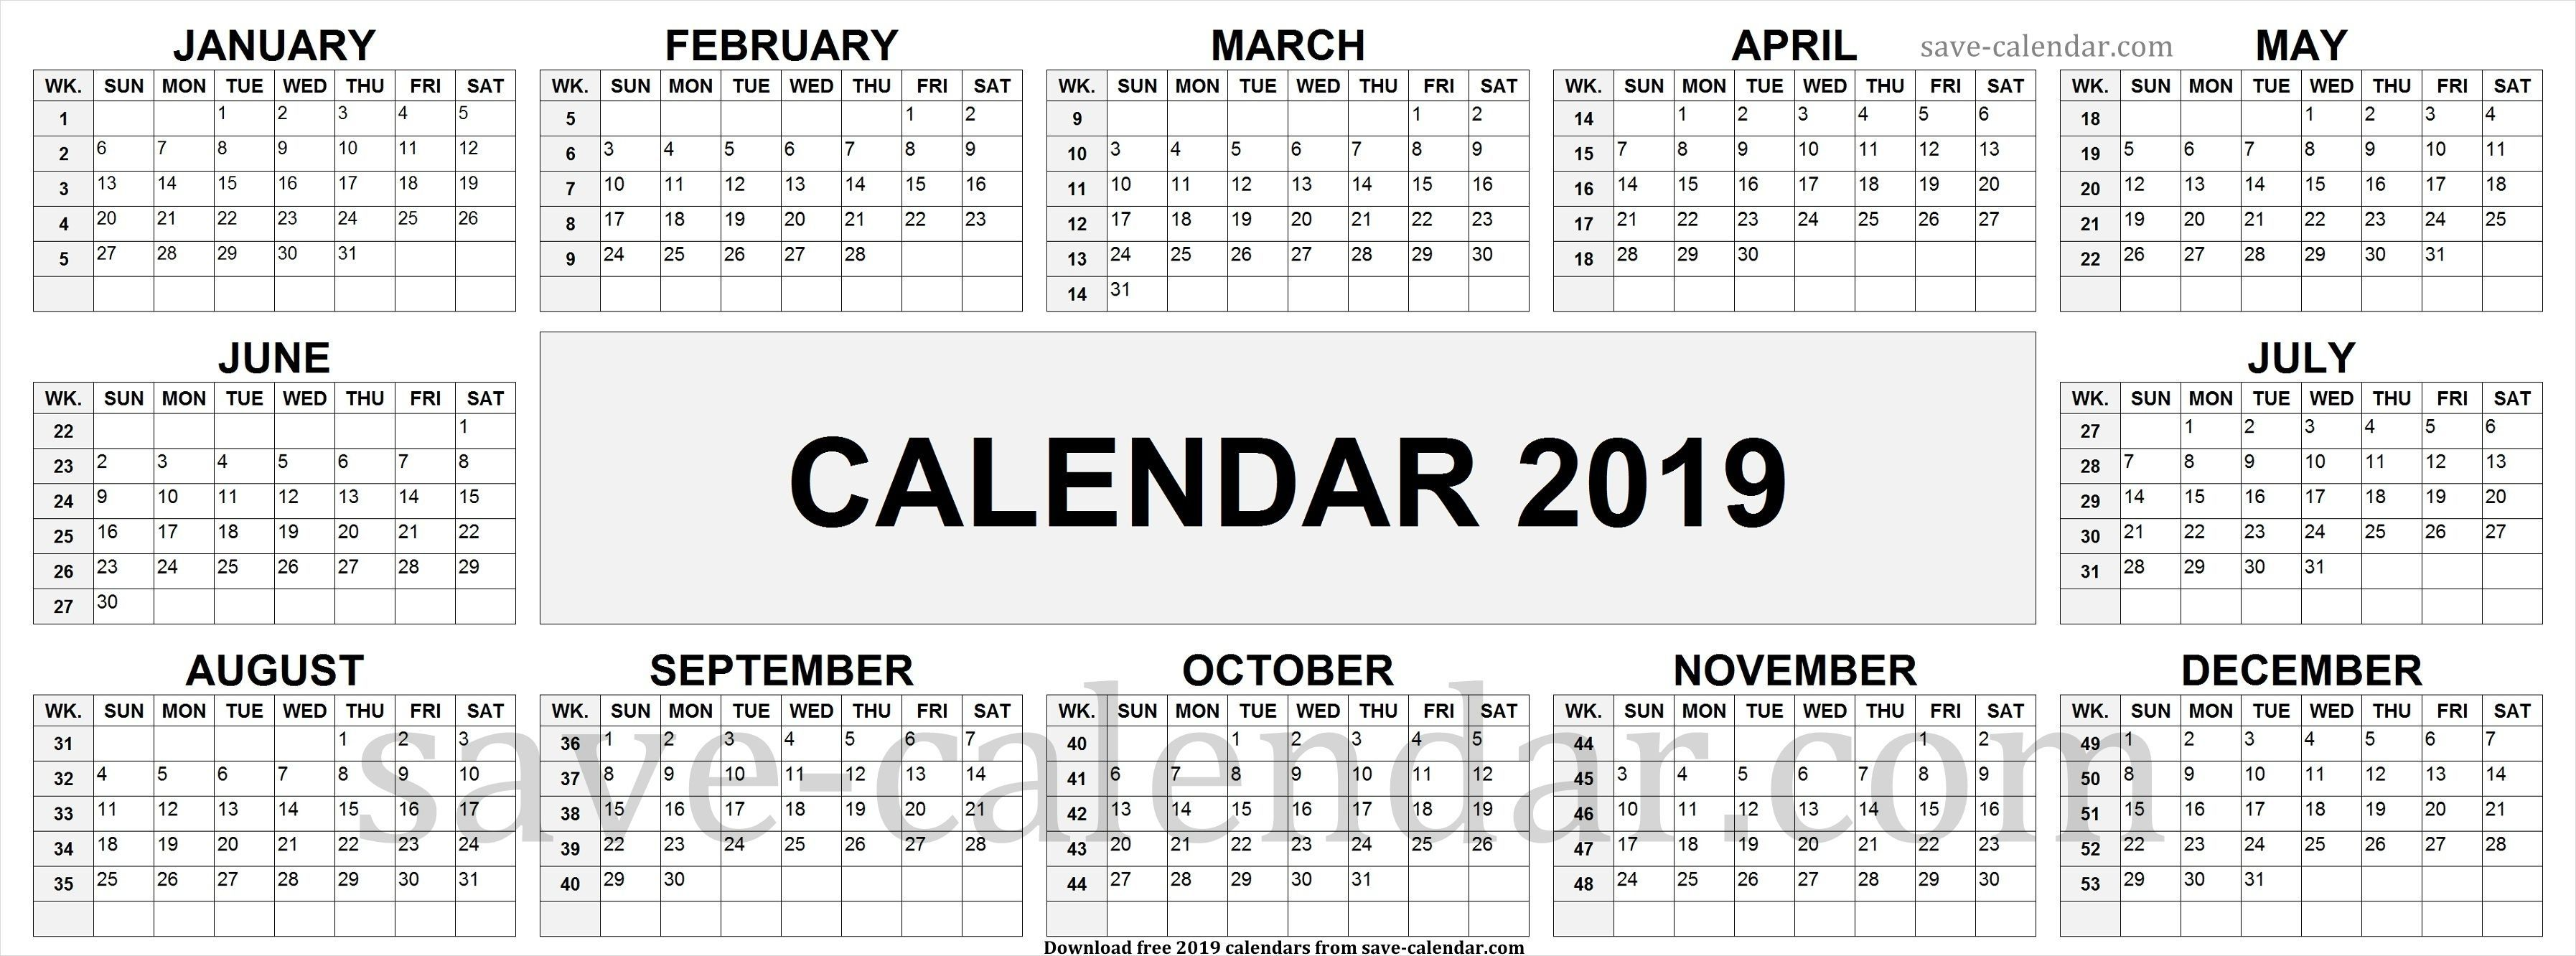 2019 Calendarweek Numbers Calendar 2019 With Week Numbers Make